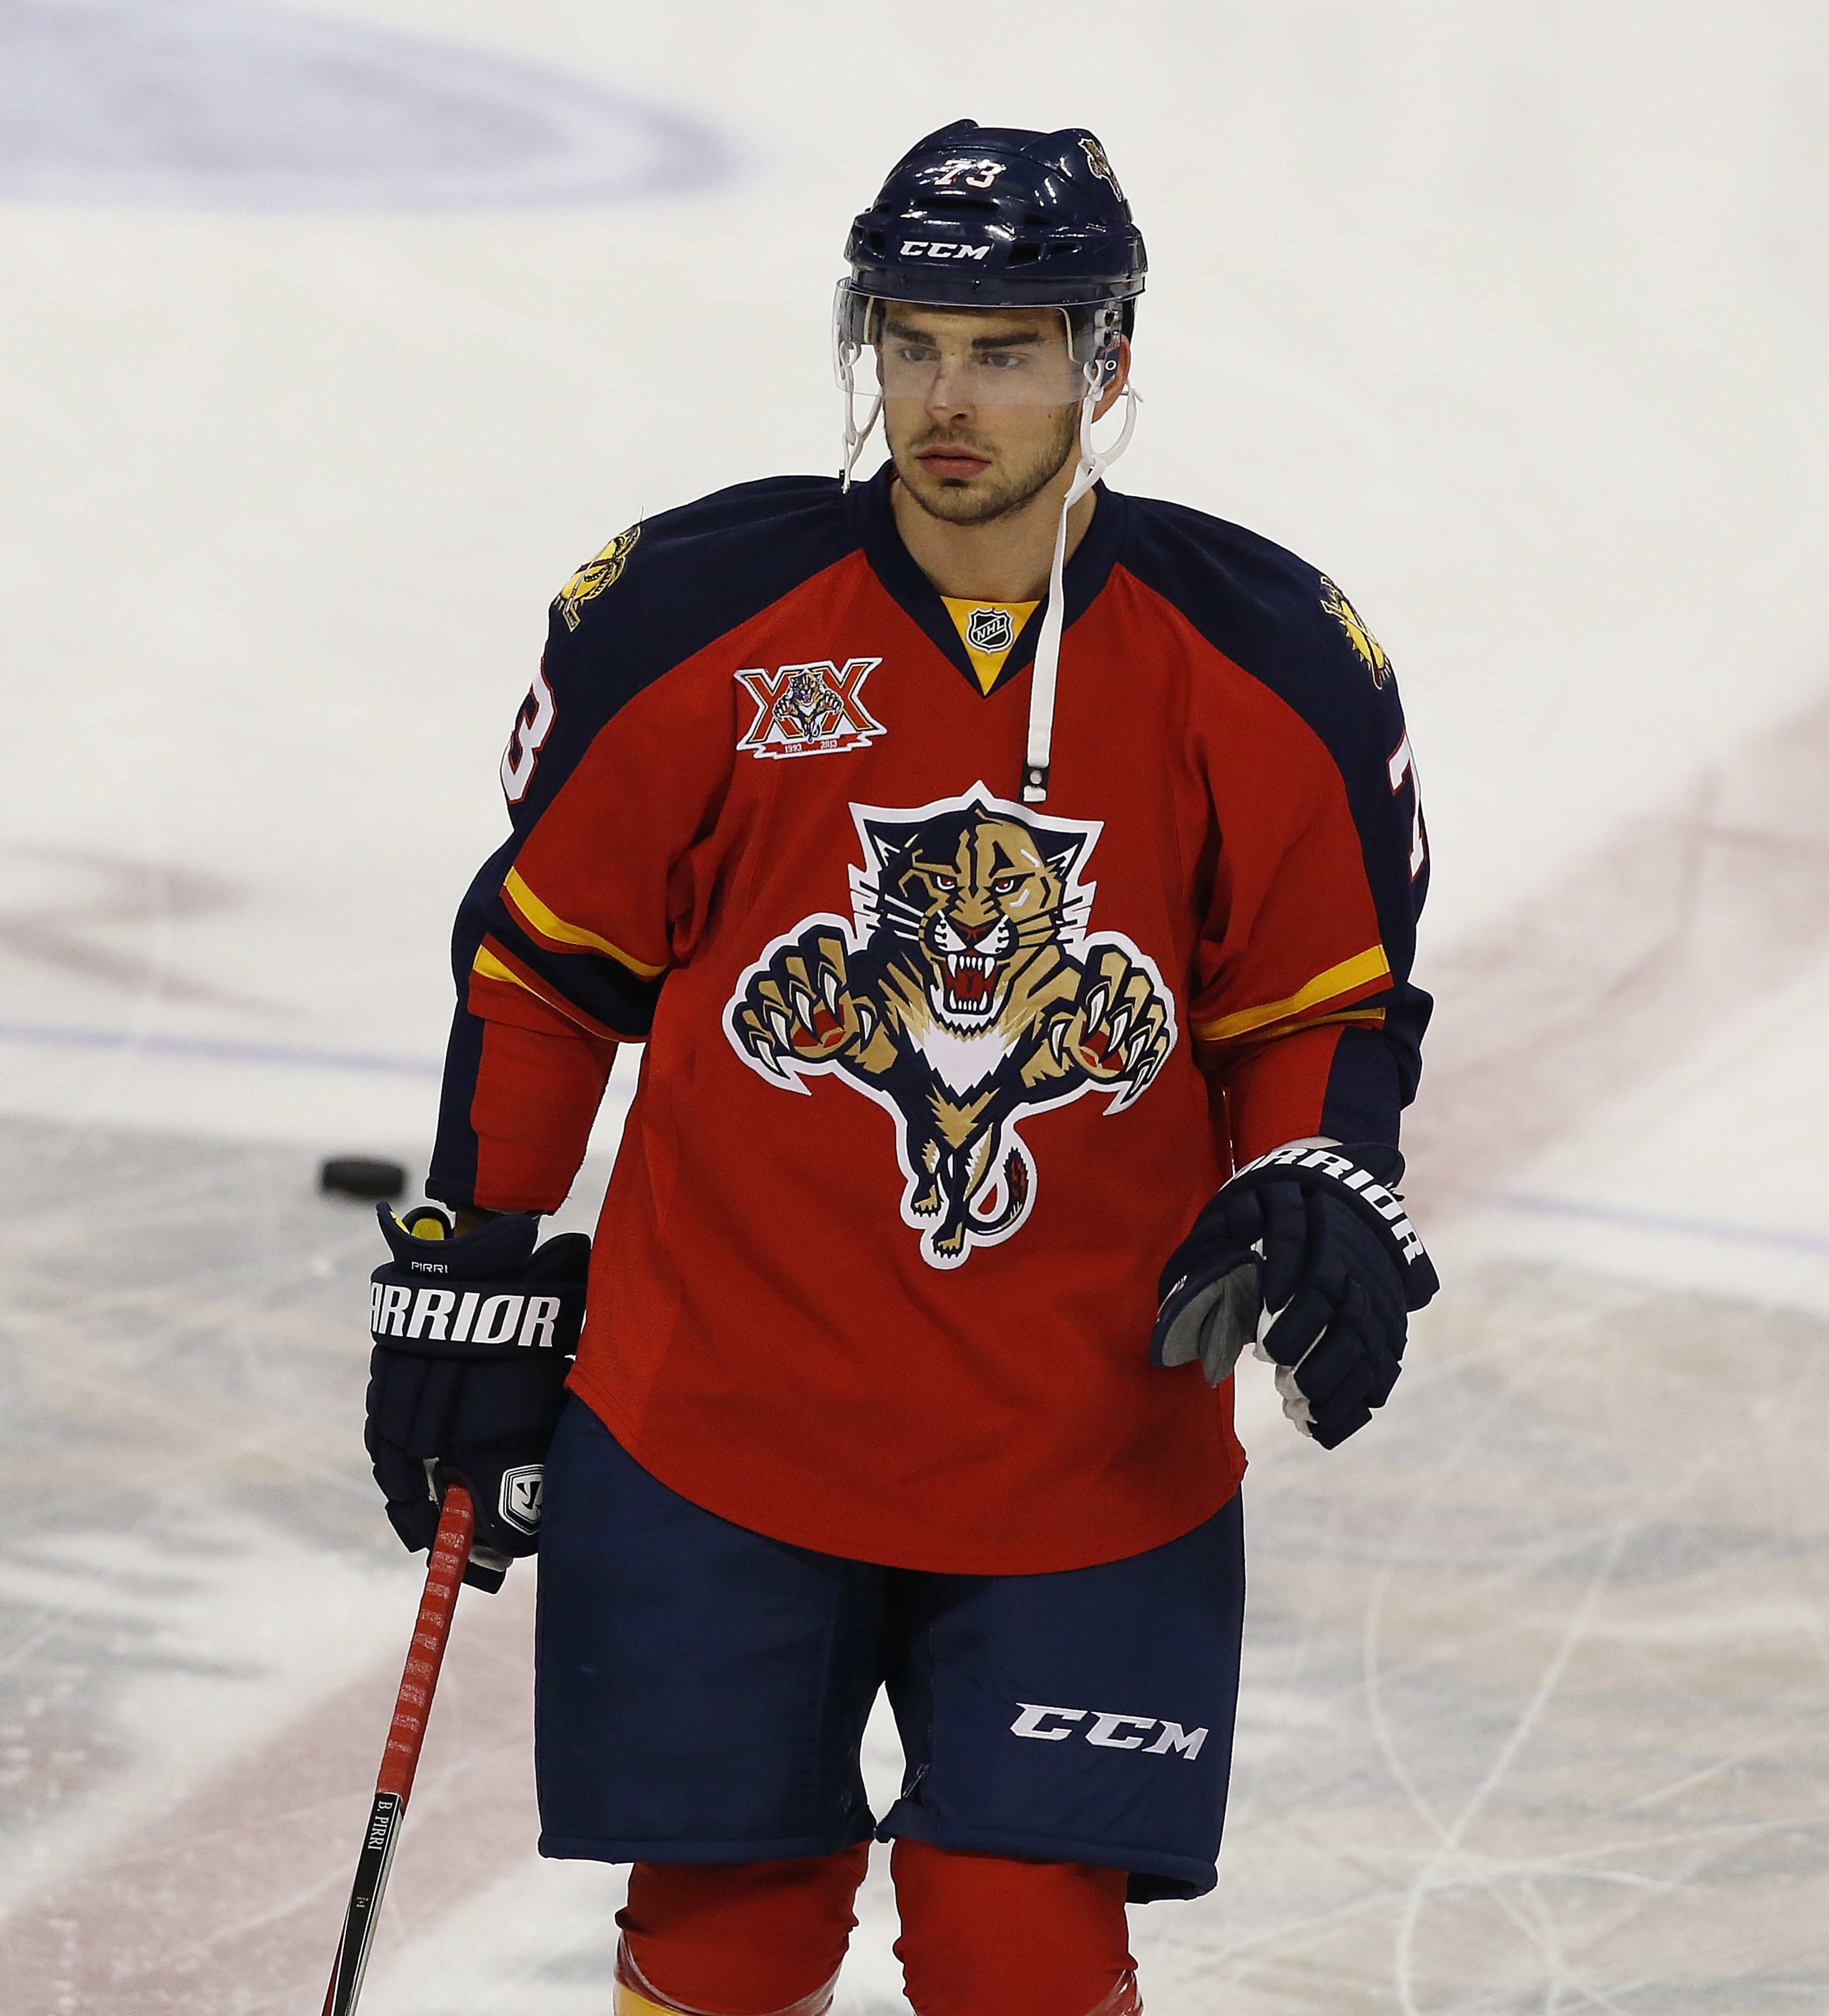 Pirri exploded offensively for the Cats last season; will he be able to do it again?